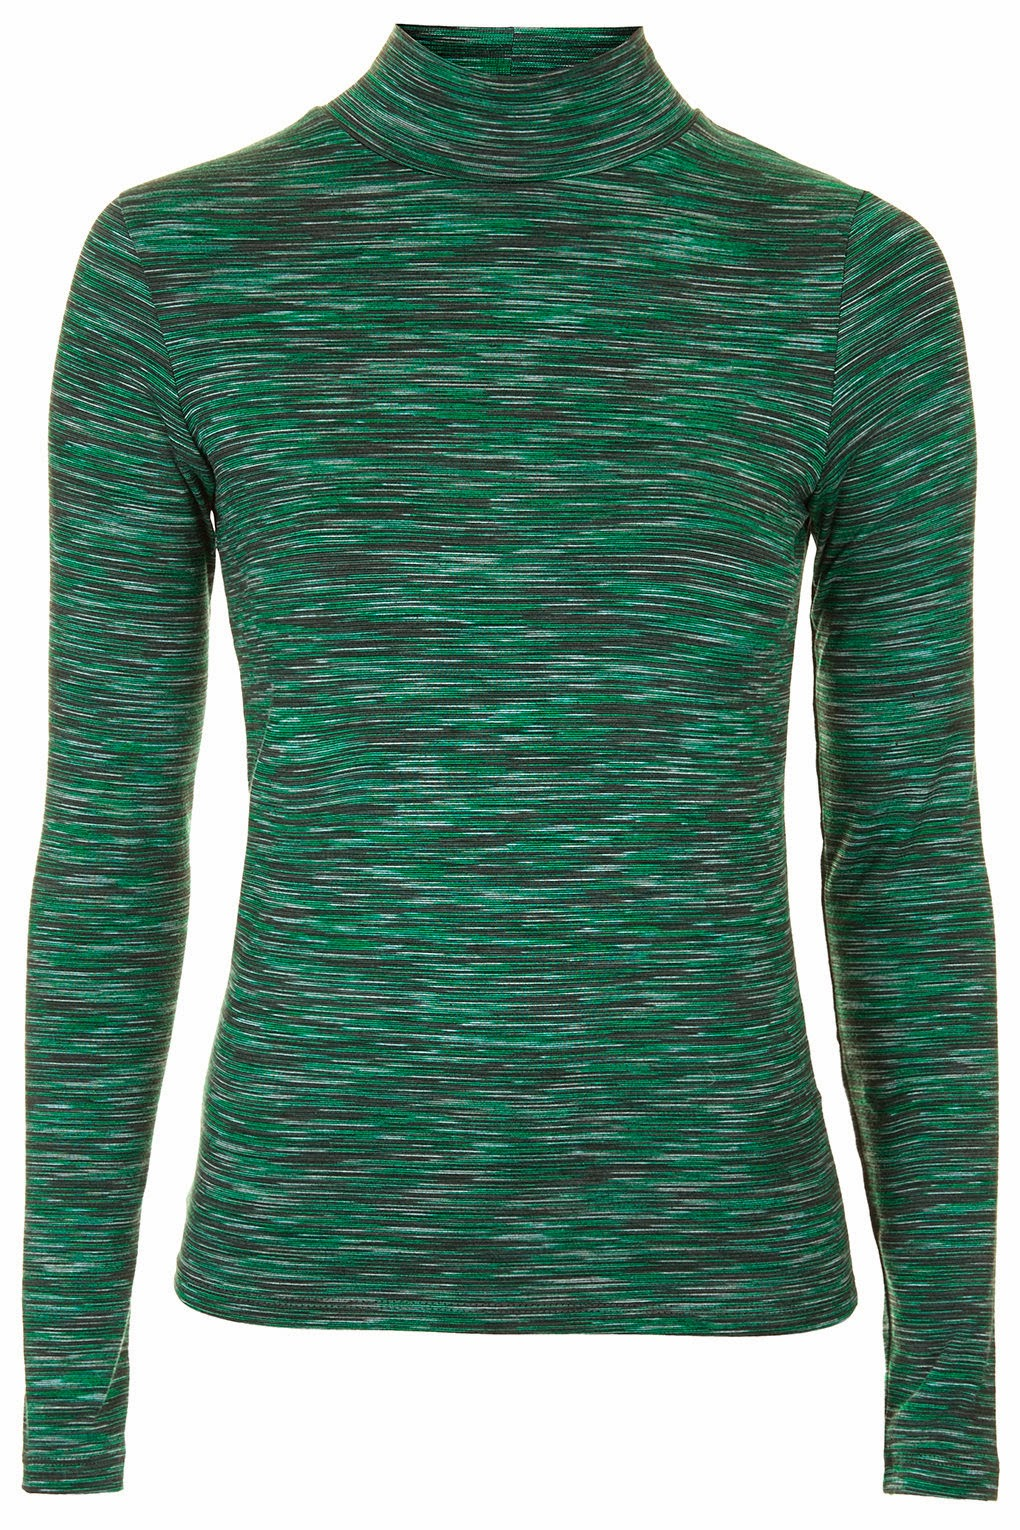 green funnel neck top